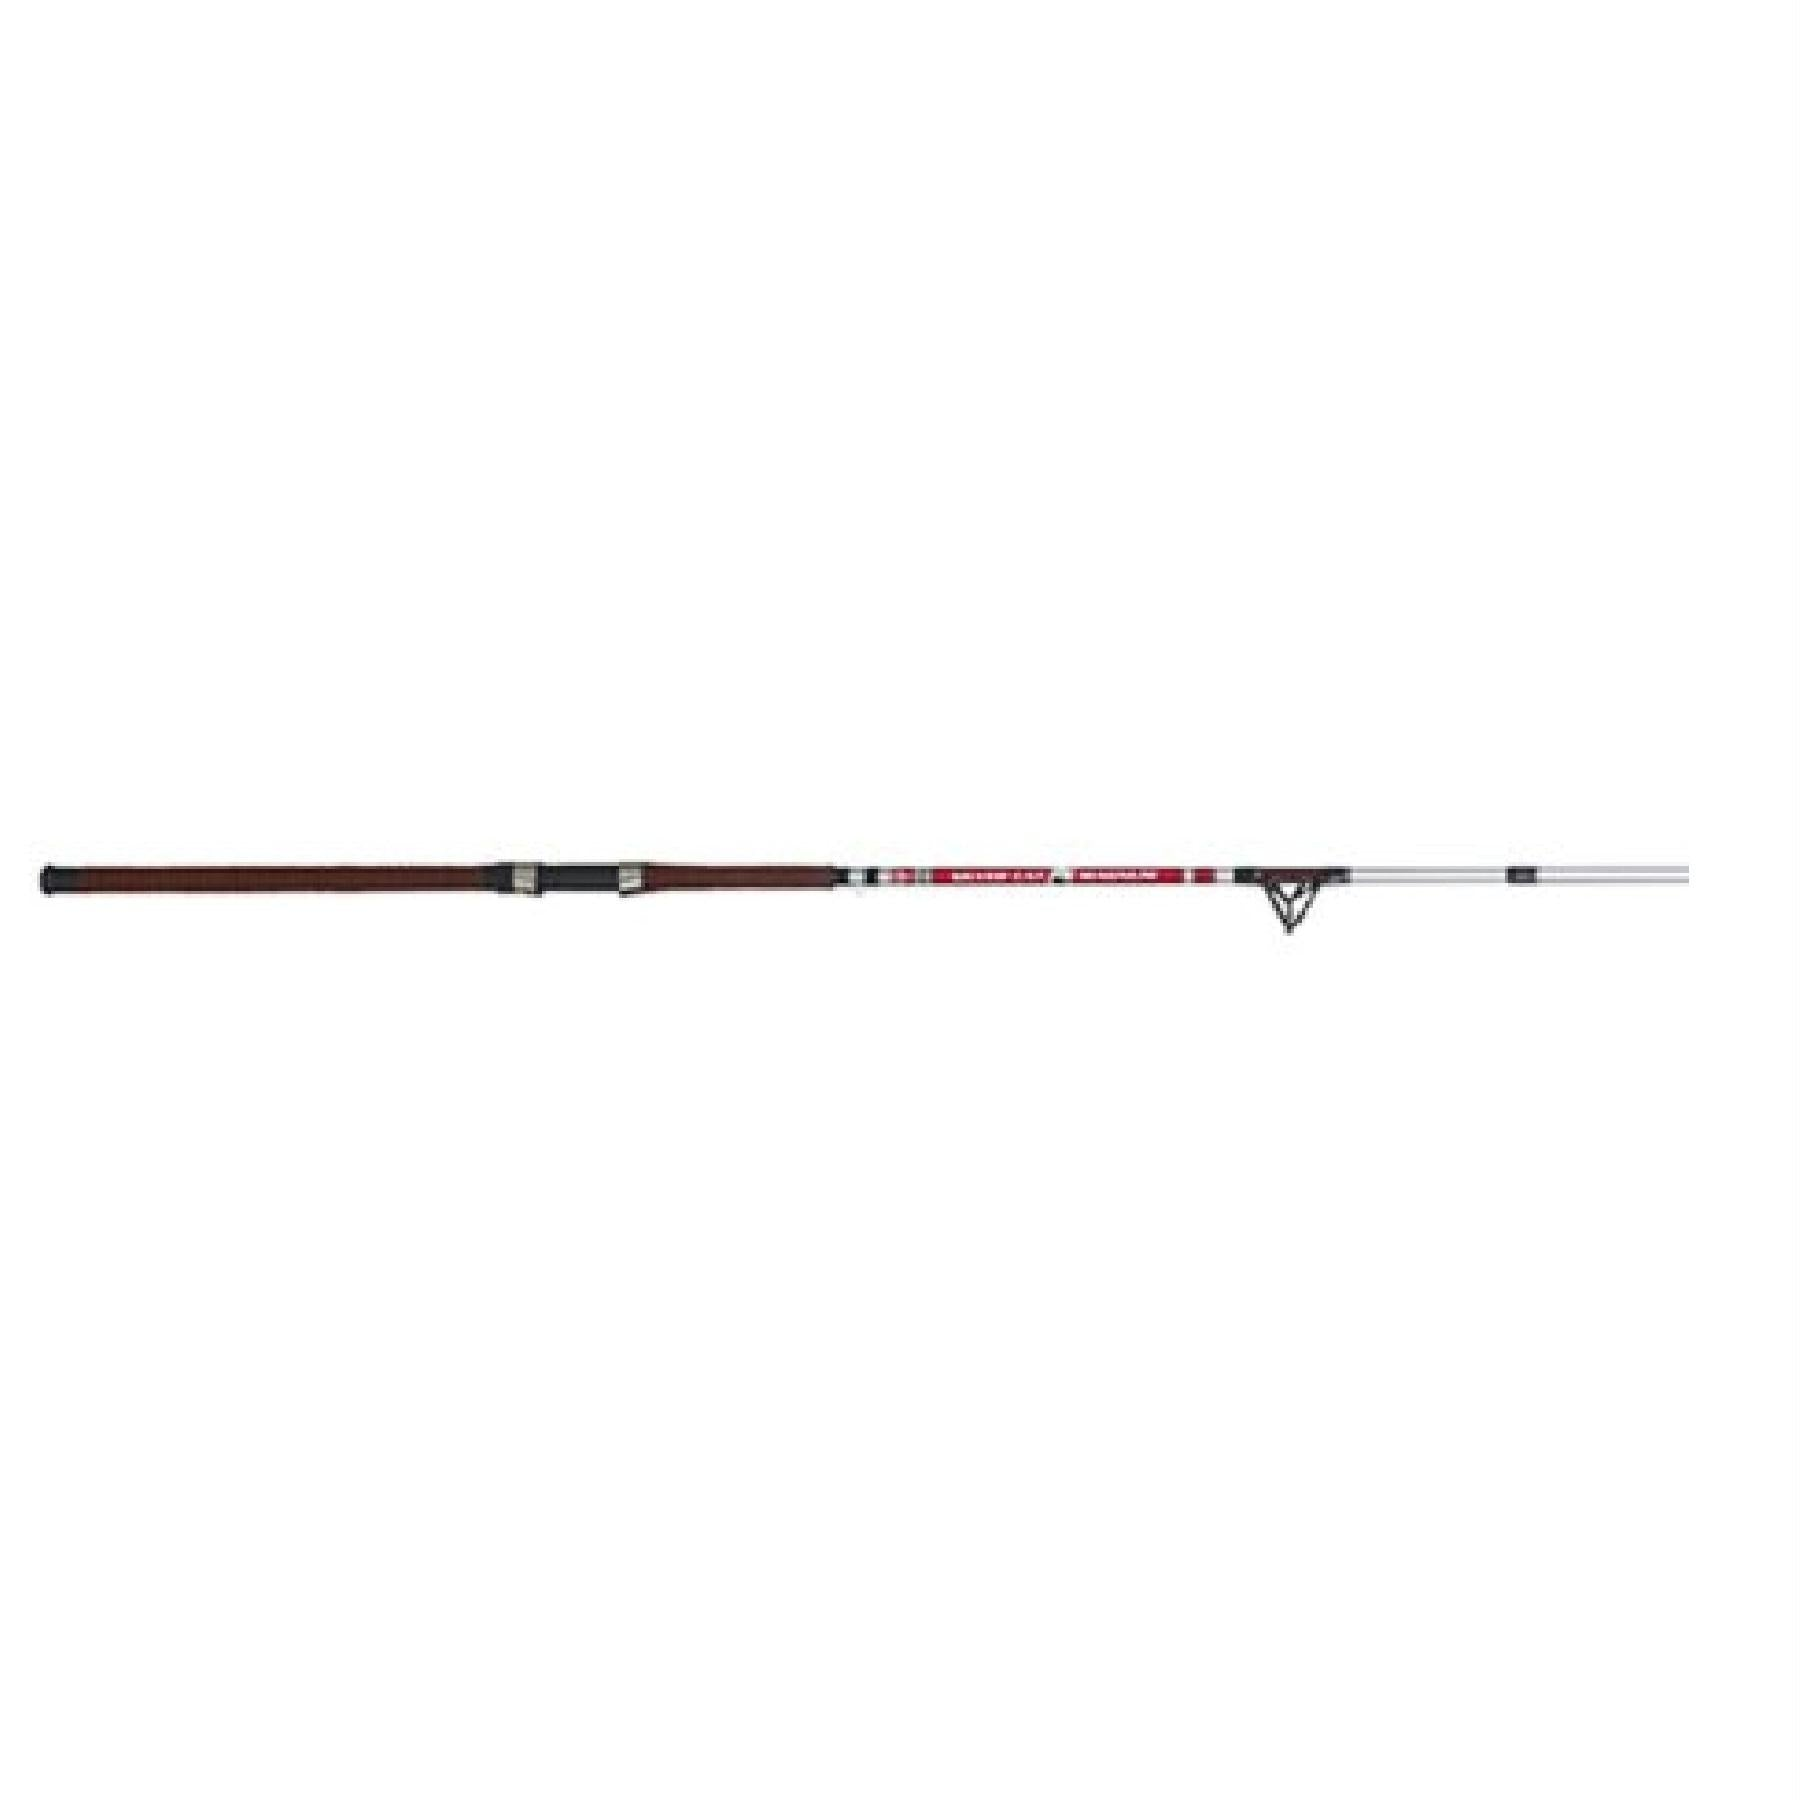 BnM Silver Cat Magnum Rod 7.5ft 1pc Casting - Survival Camping Pro